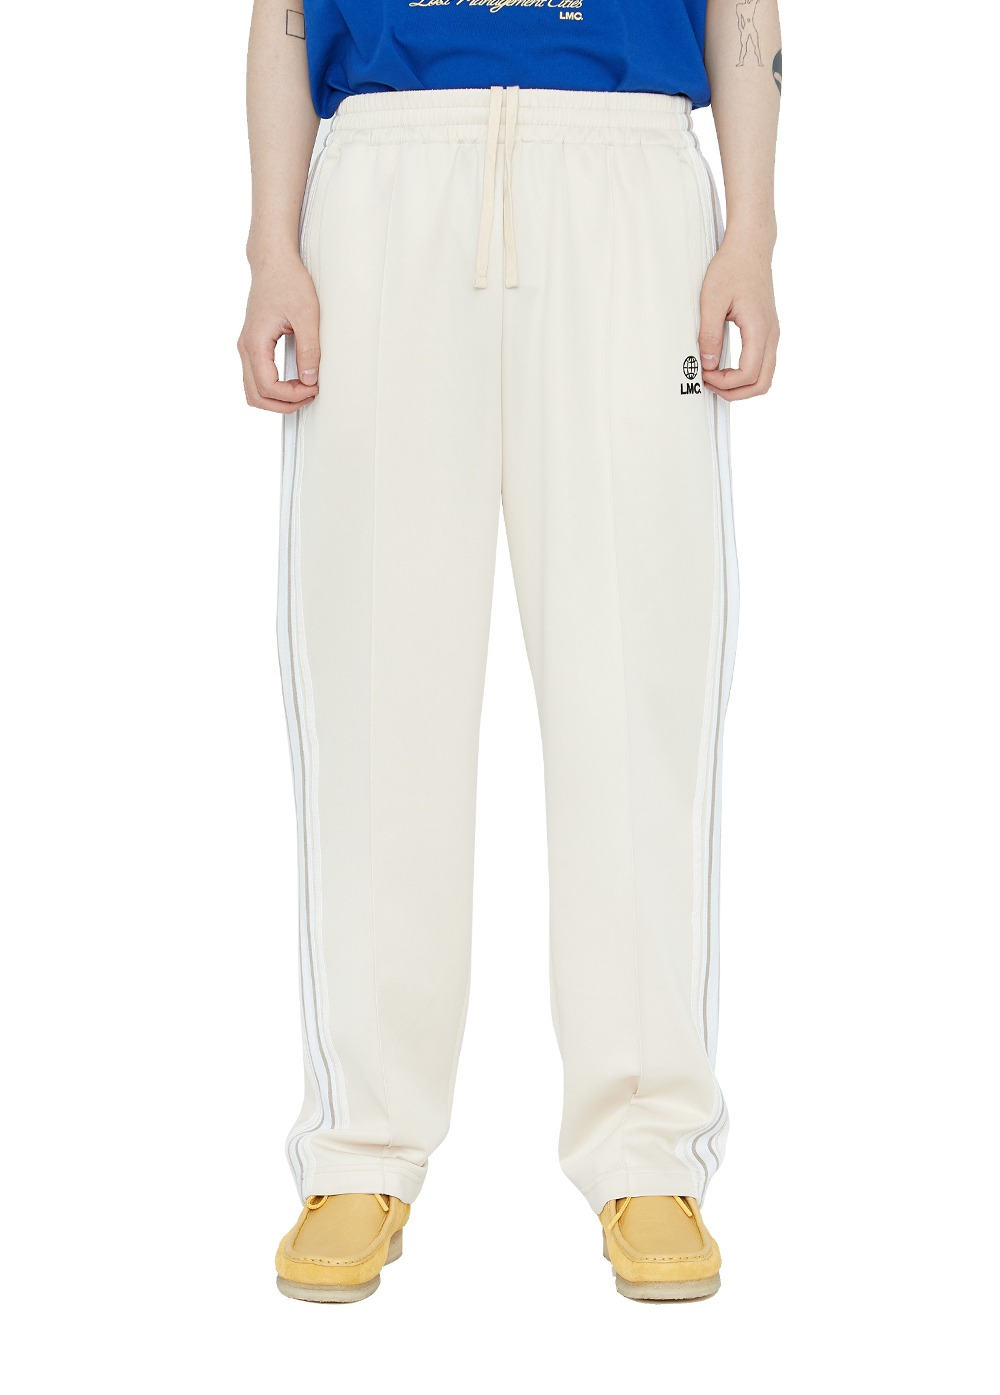 LMC SIDE STRIPED JERSEY PANTS cream